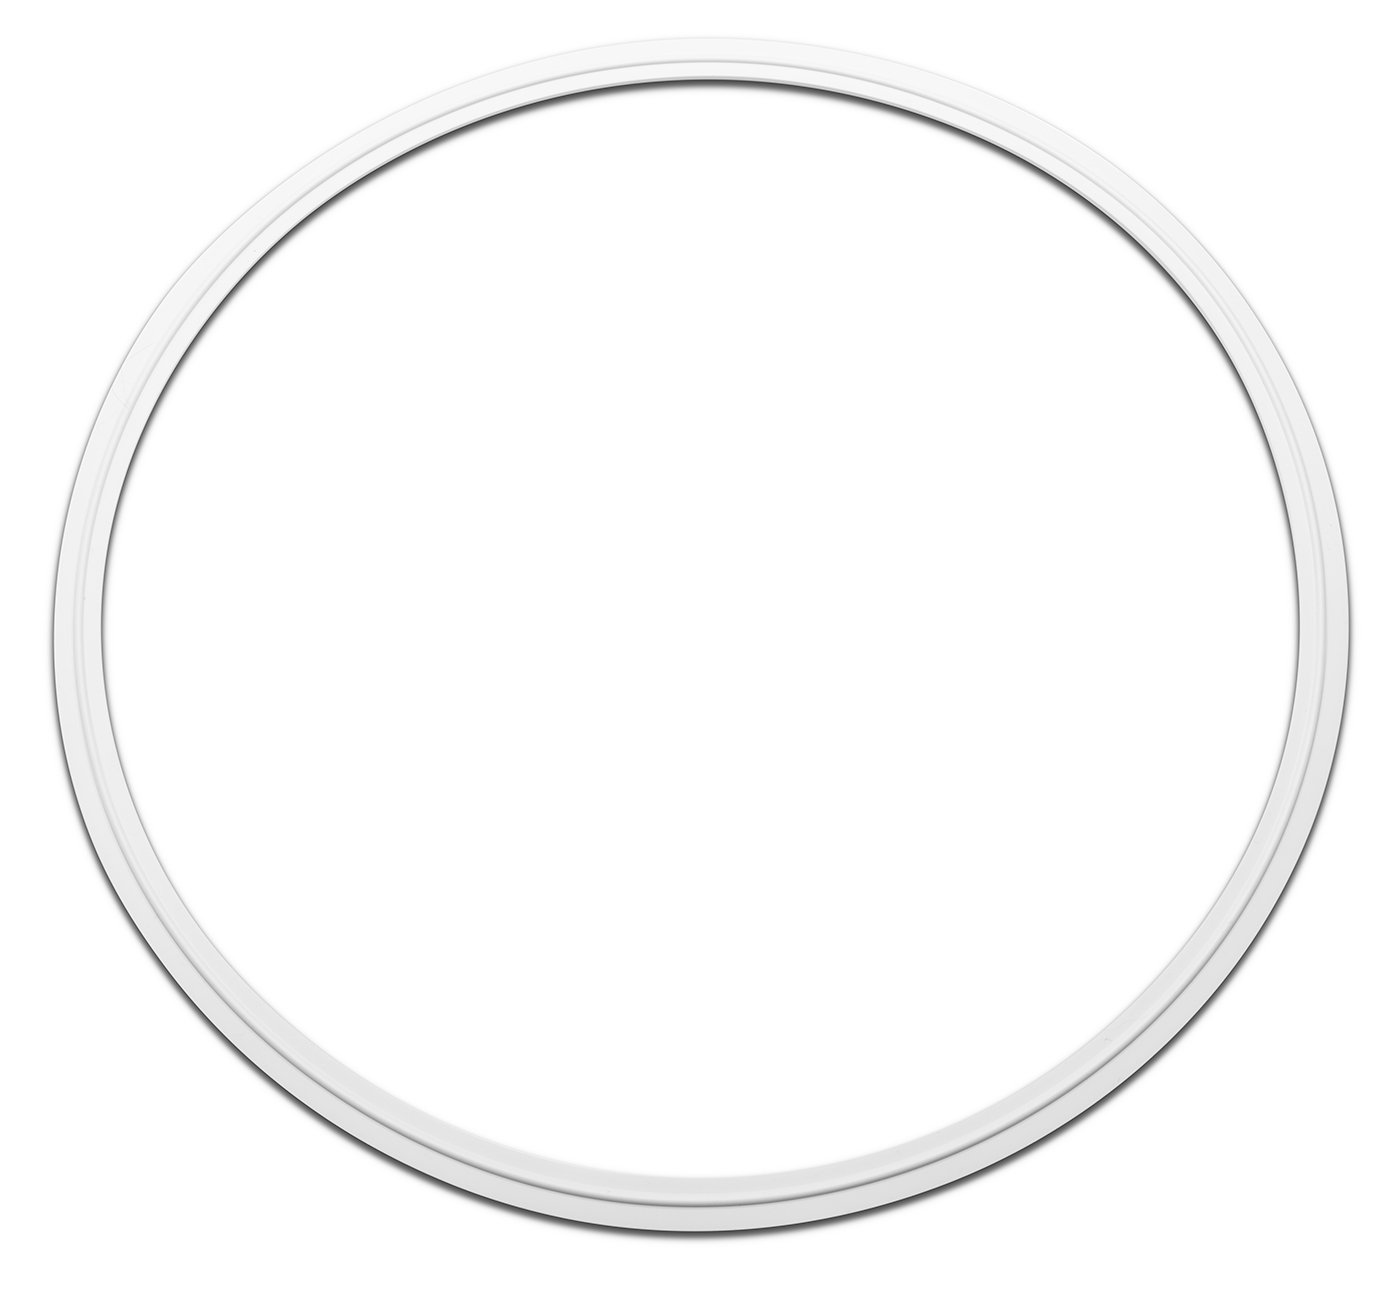 Silicone Tri-Clamp Gaskets Shop All Categories BVV 12-inch